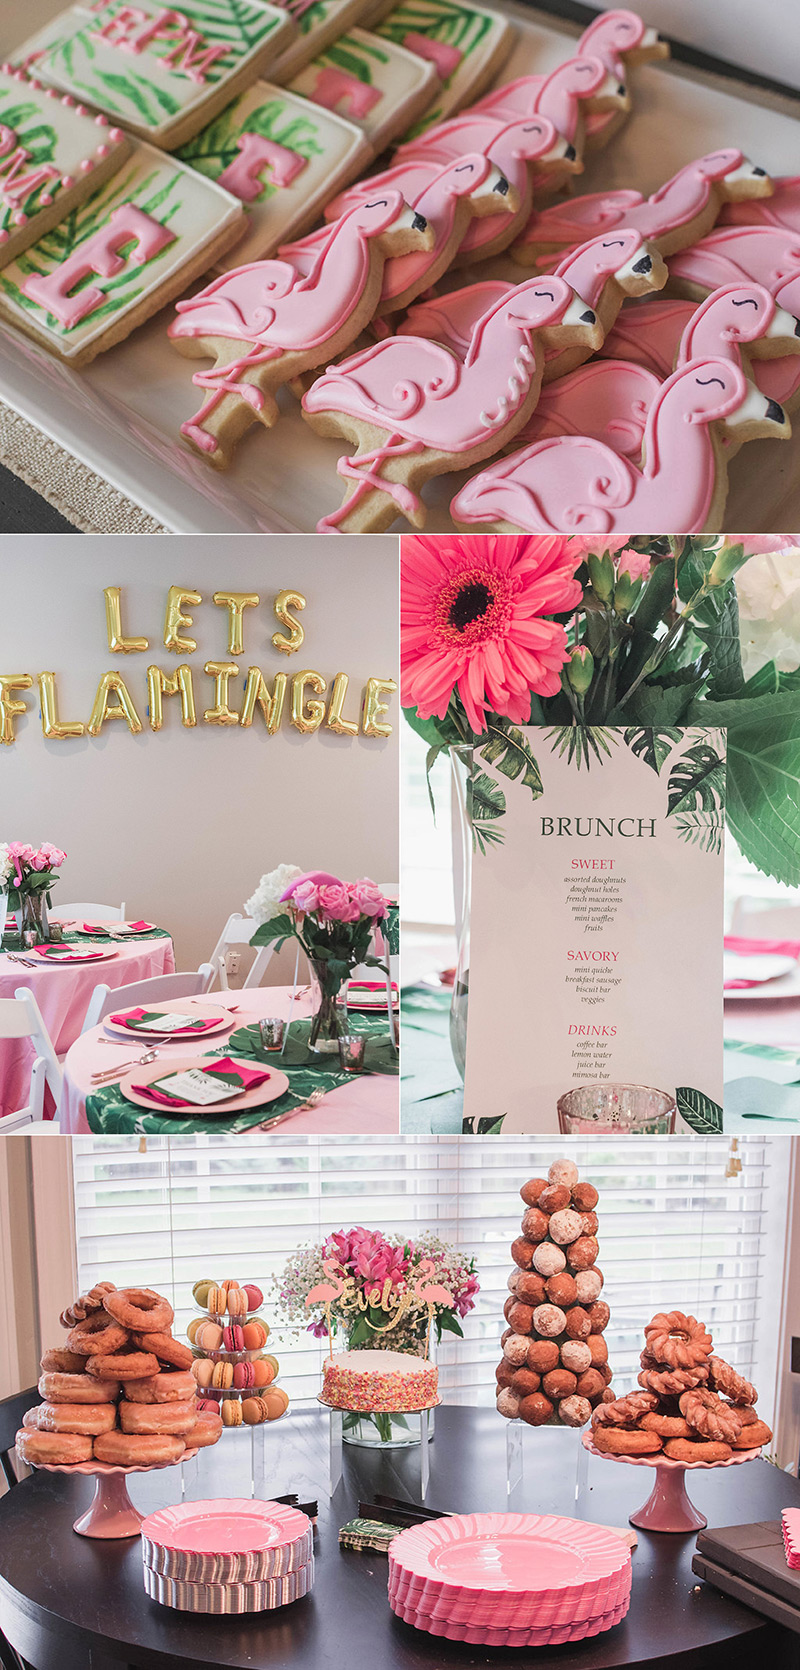 How to Throw a Baby Shower How to Throw a Baby Shower new foto